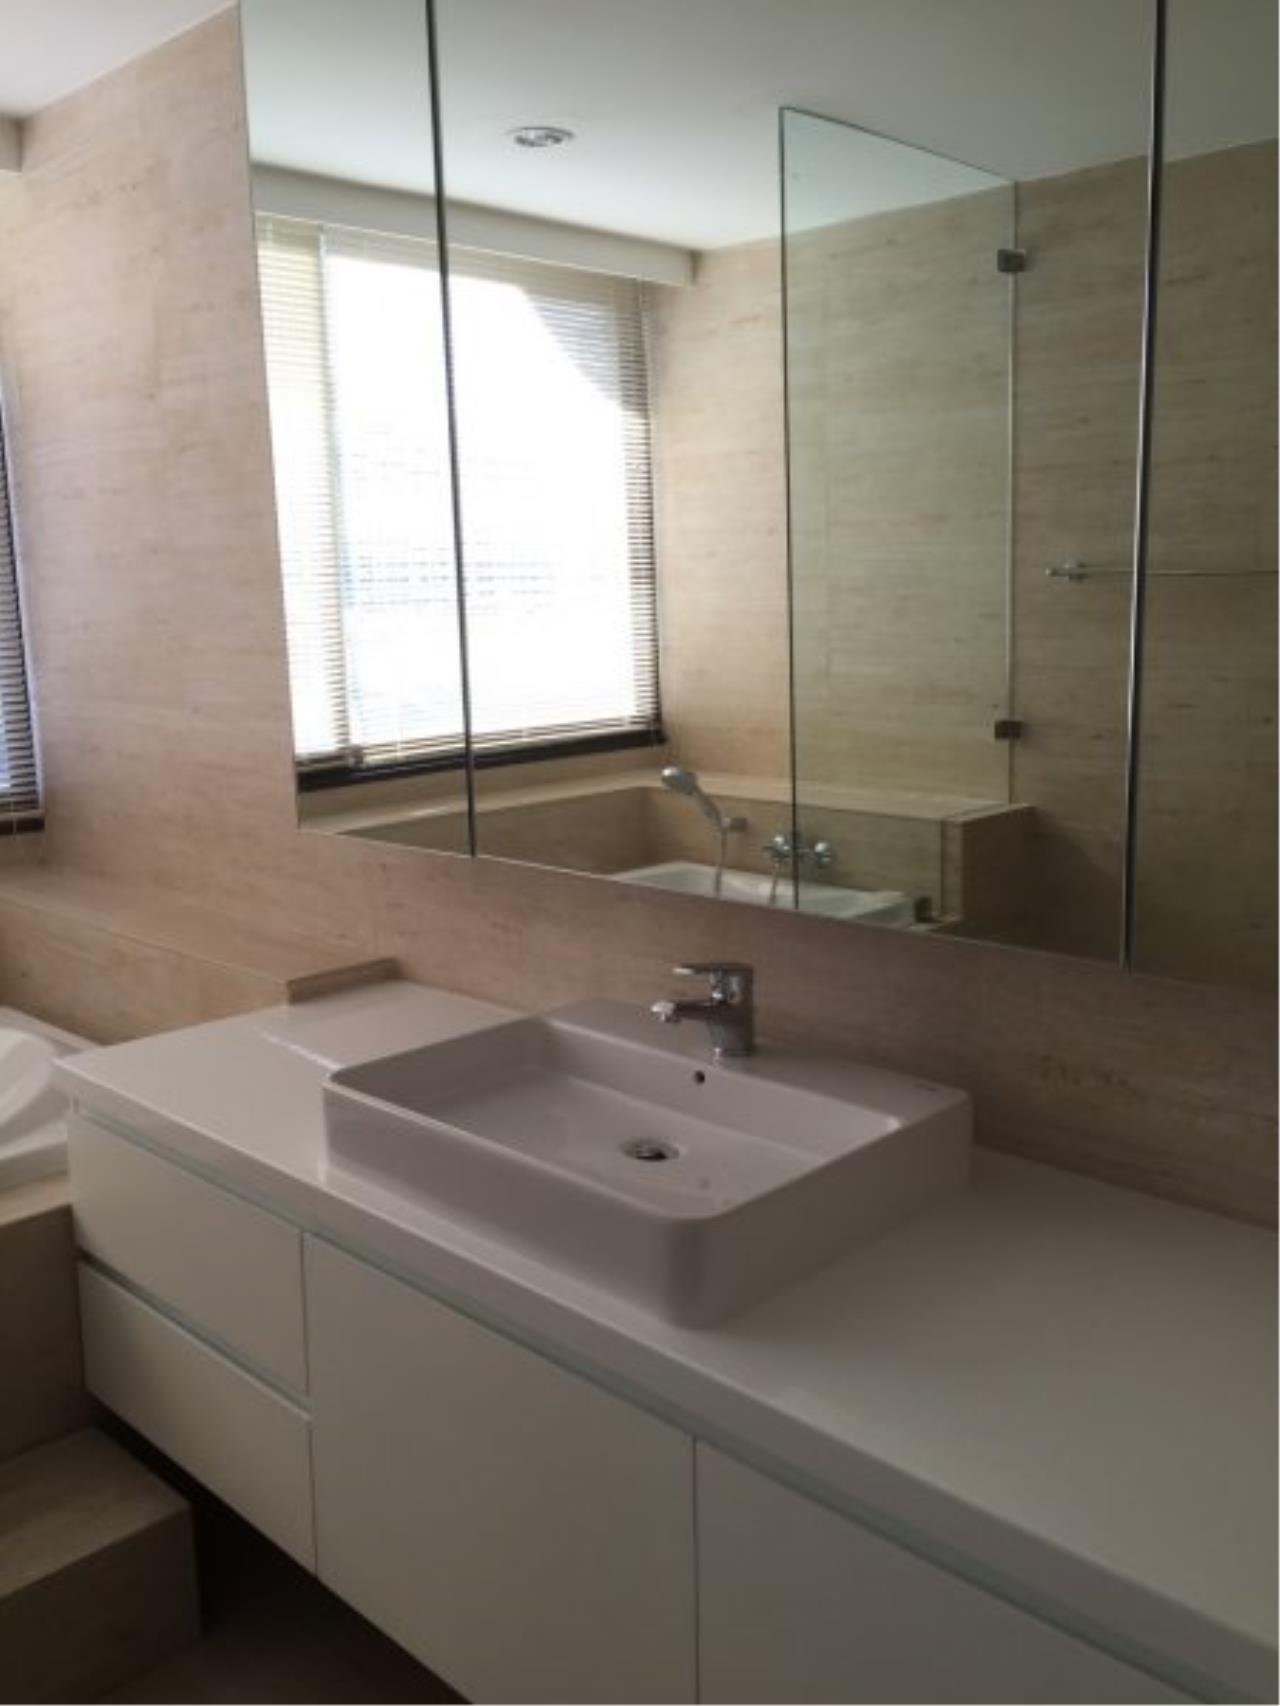 Piri Property Agency's Huge 3 Bedrooms in the Prime Mansion Condo for sale on high floor 10